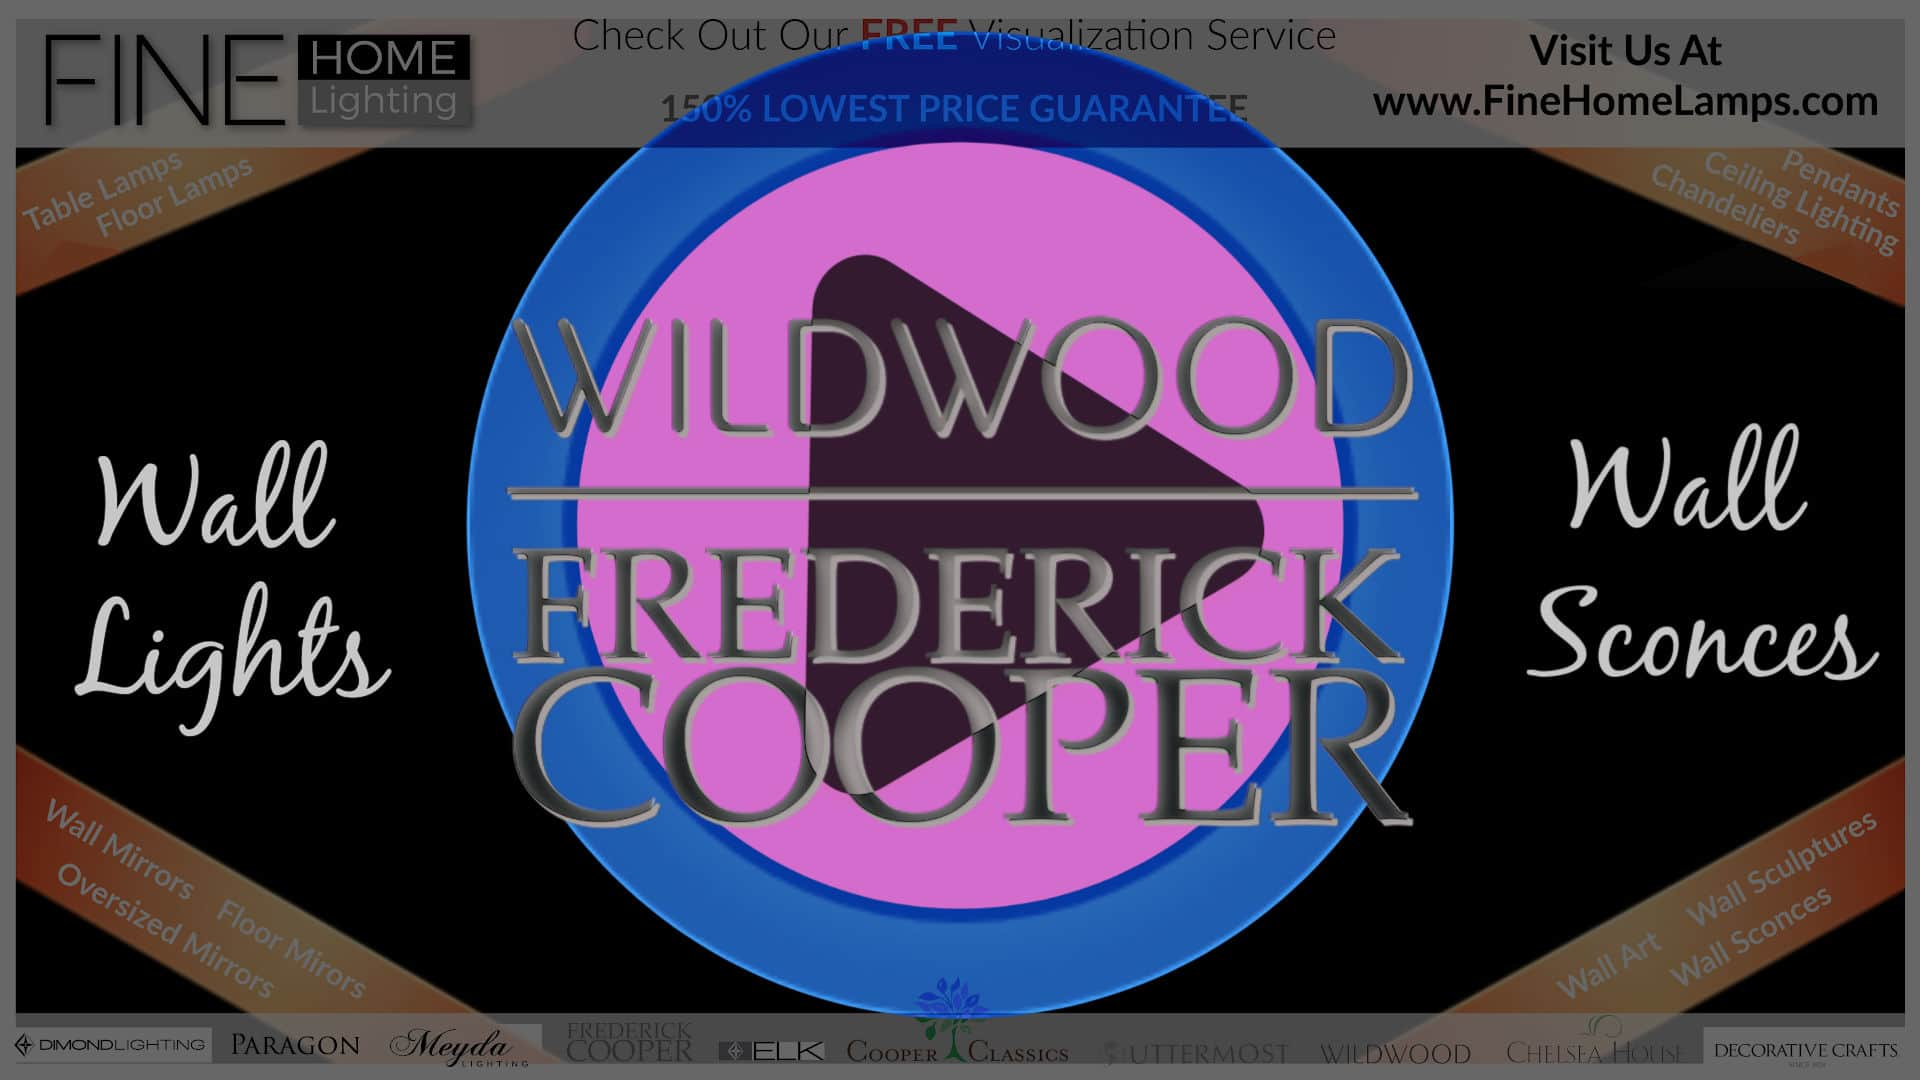 Wildwood-Frederick-Cooper-Sconces-Thanks-for-watching-this-video-Get-an-additional-15-percent-off-your-next-purchase-Use-Coupon-Code-VIDEO